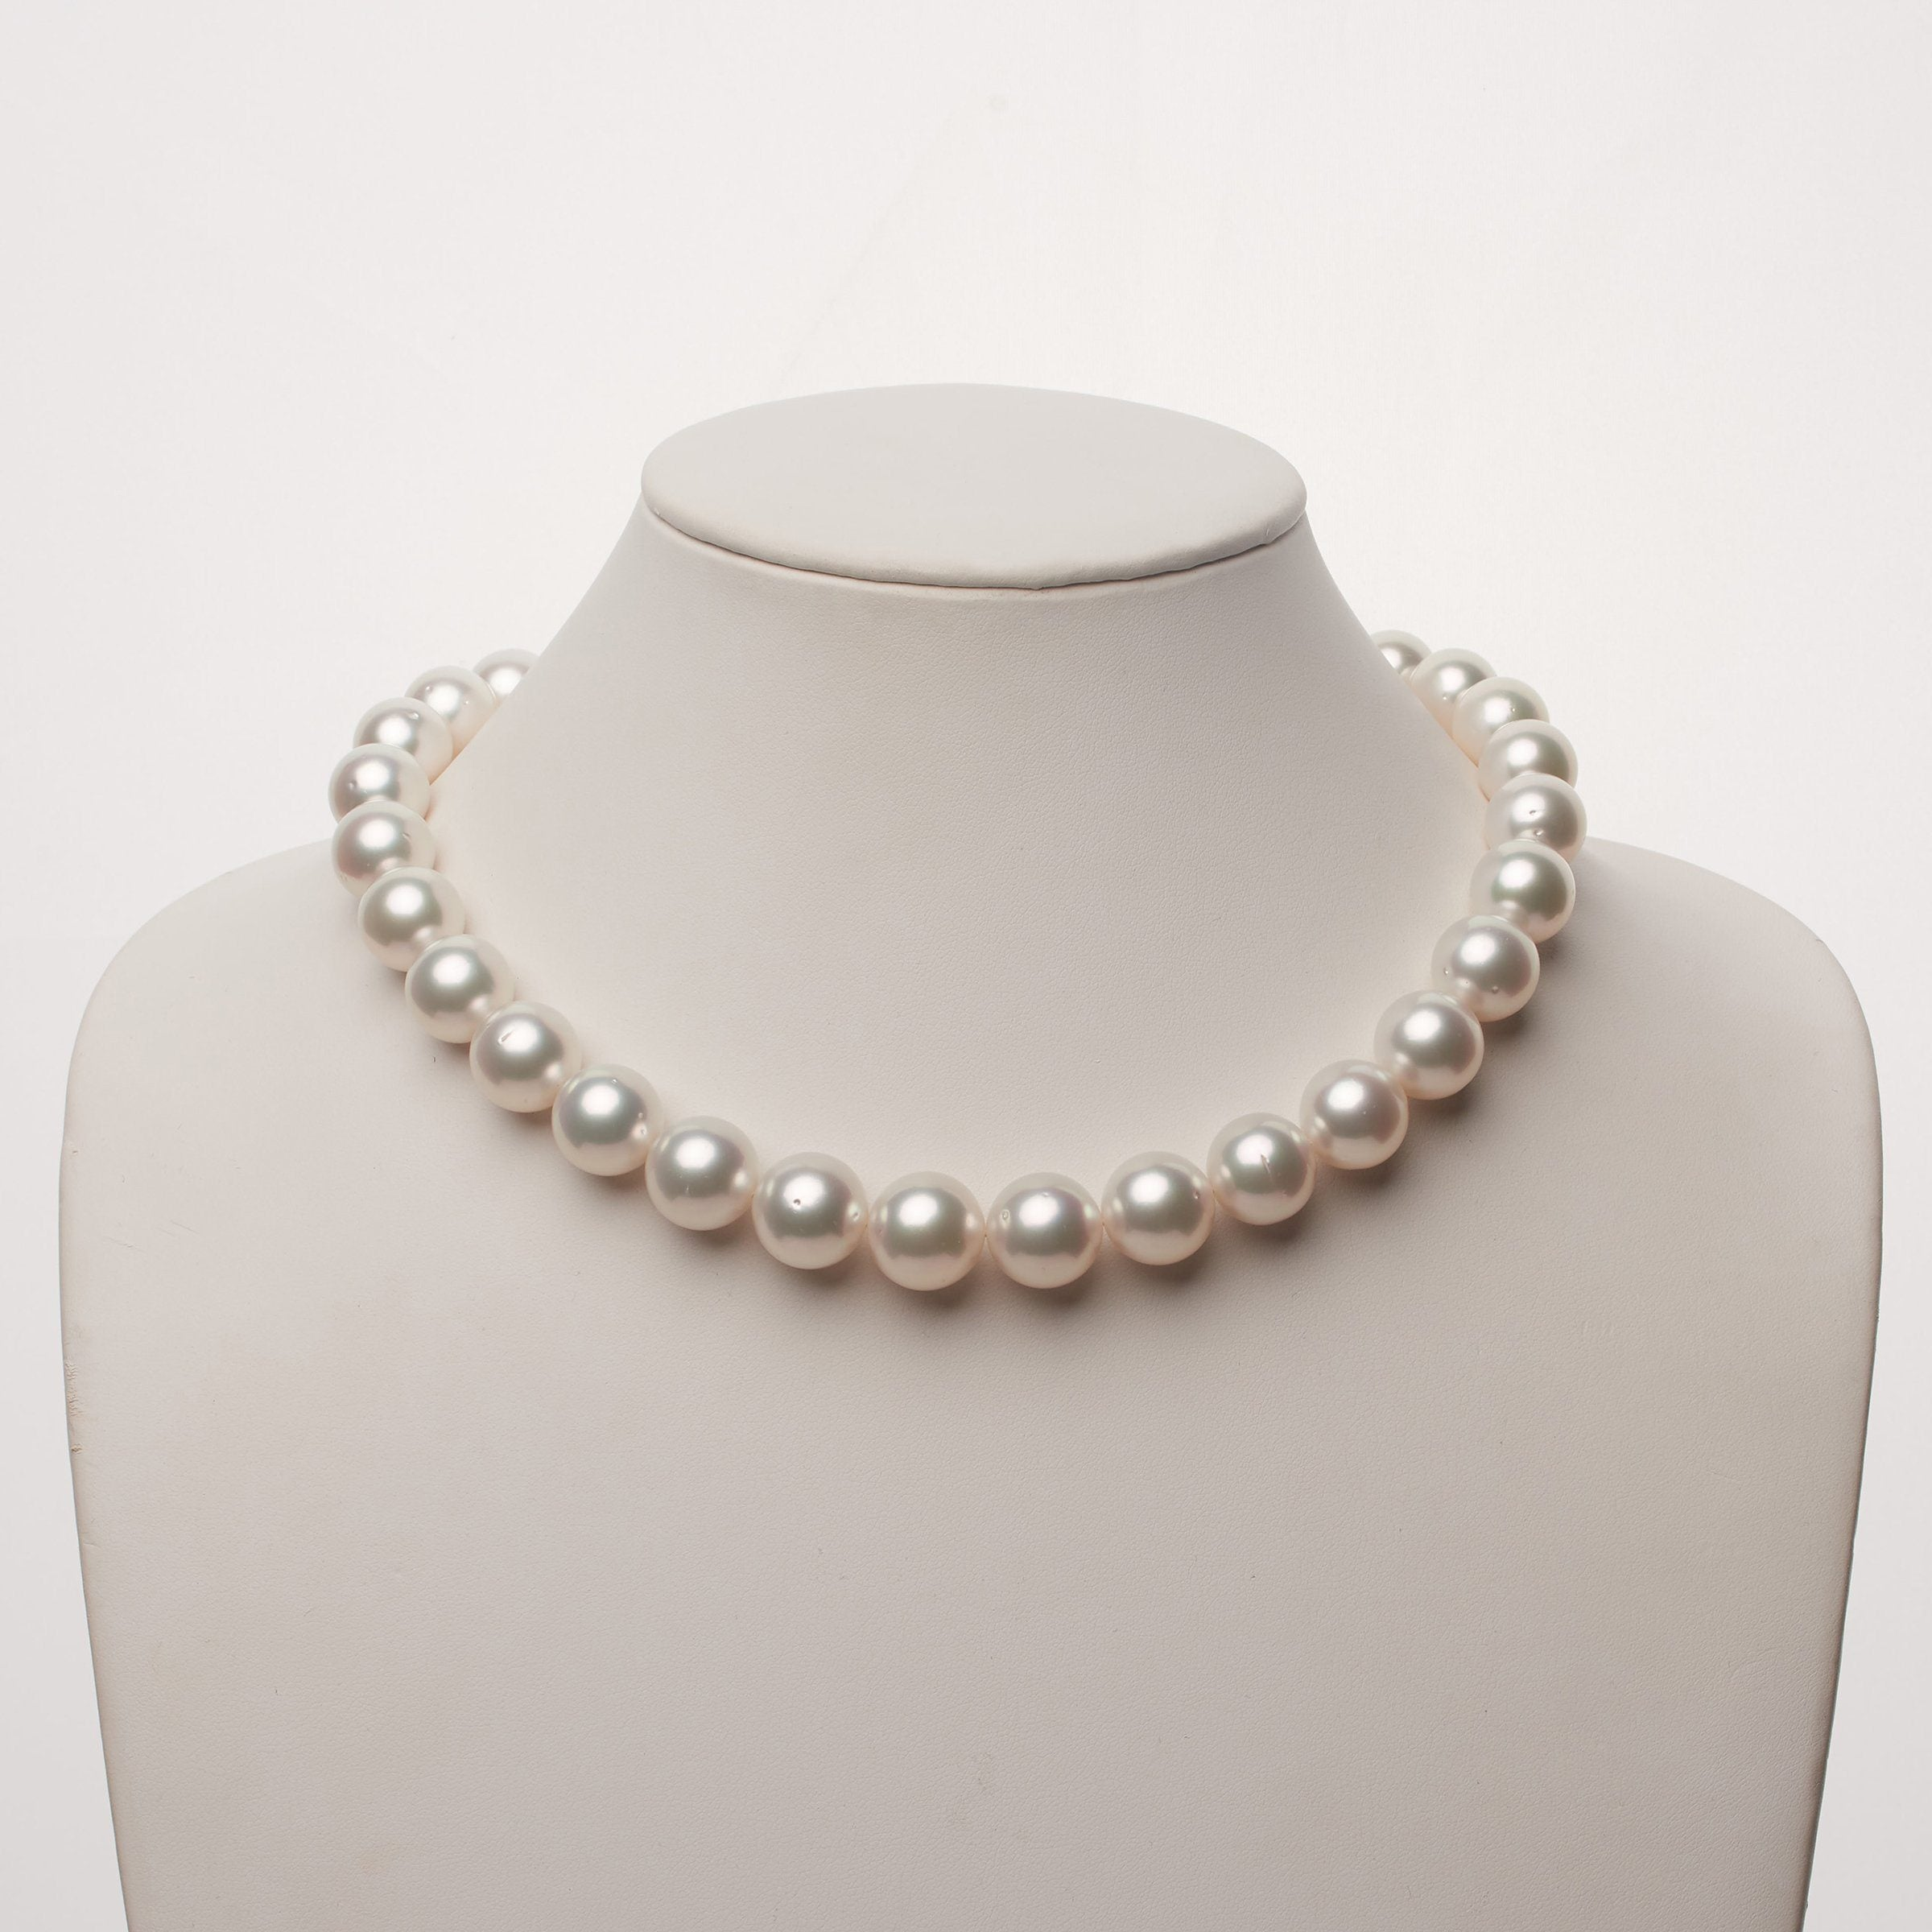 The Sentito White South Sea Pearl Necklace